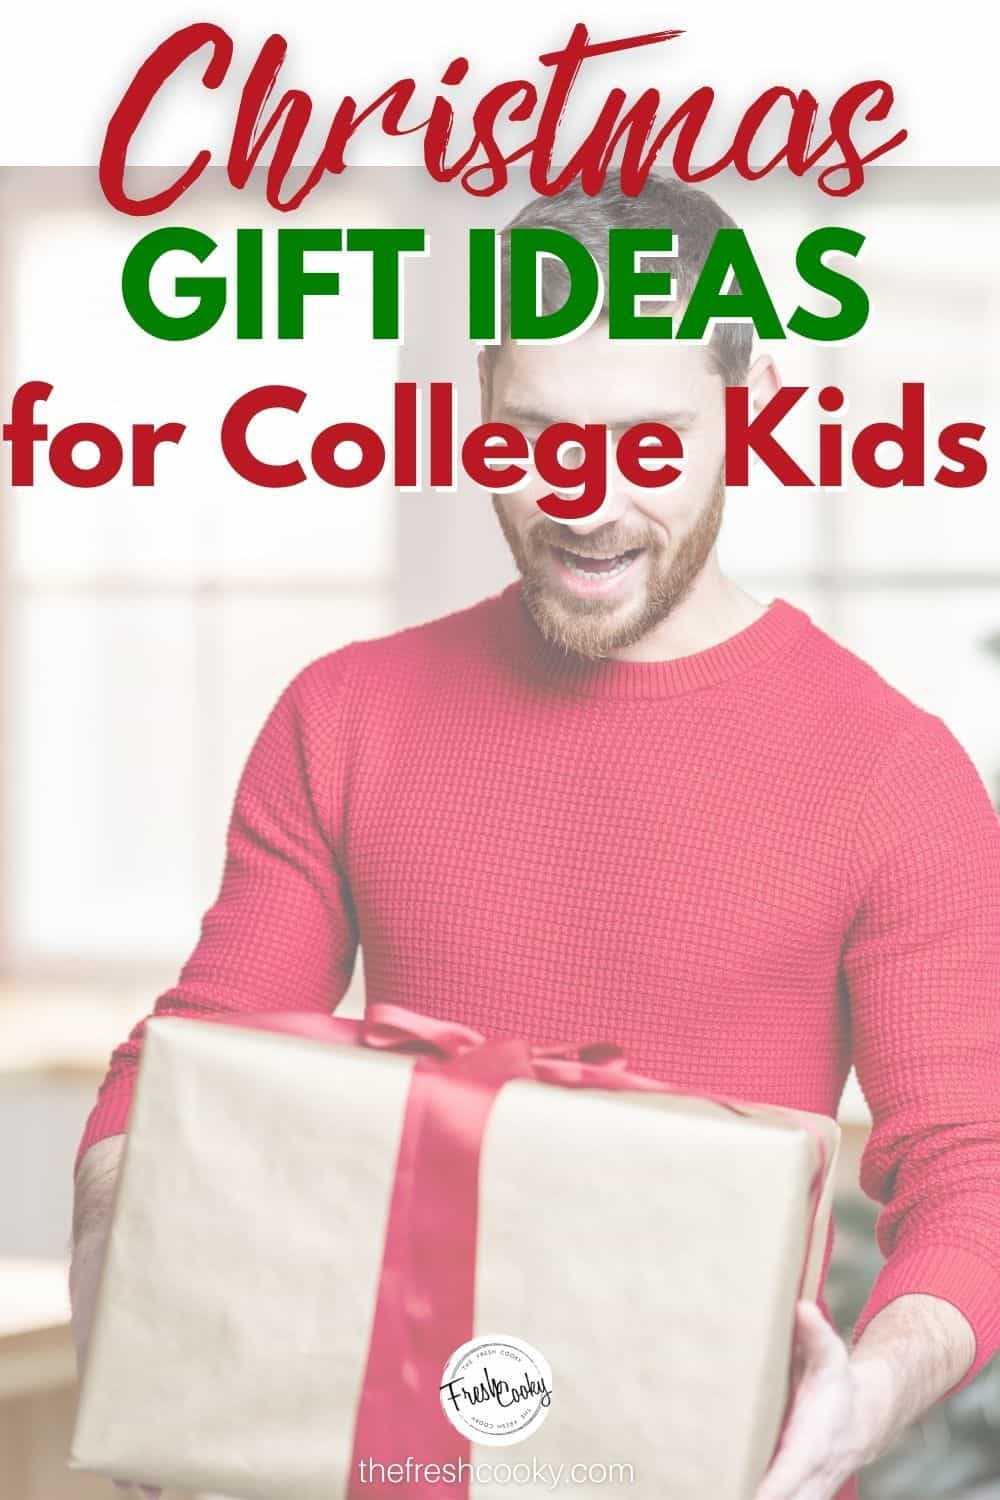 Great gifts for college boys, gifts college guys actually want! Gift ideas for teens, kids. I polled my friends with college boys to come up with this great list of college gift ideas and stocking stuffers!  Via @thefreshcooky | #giftideas #collegeguys via @thefreshcooky